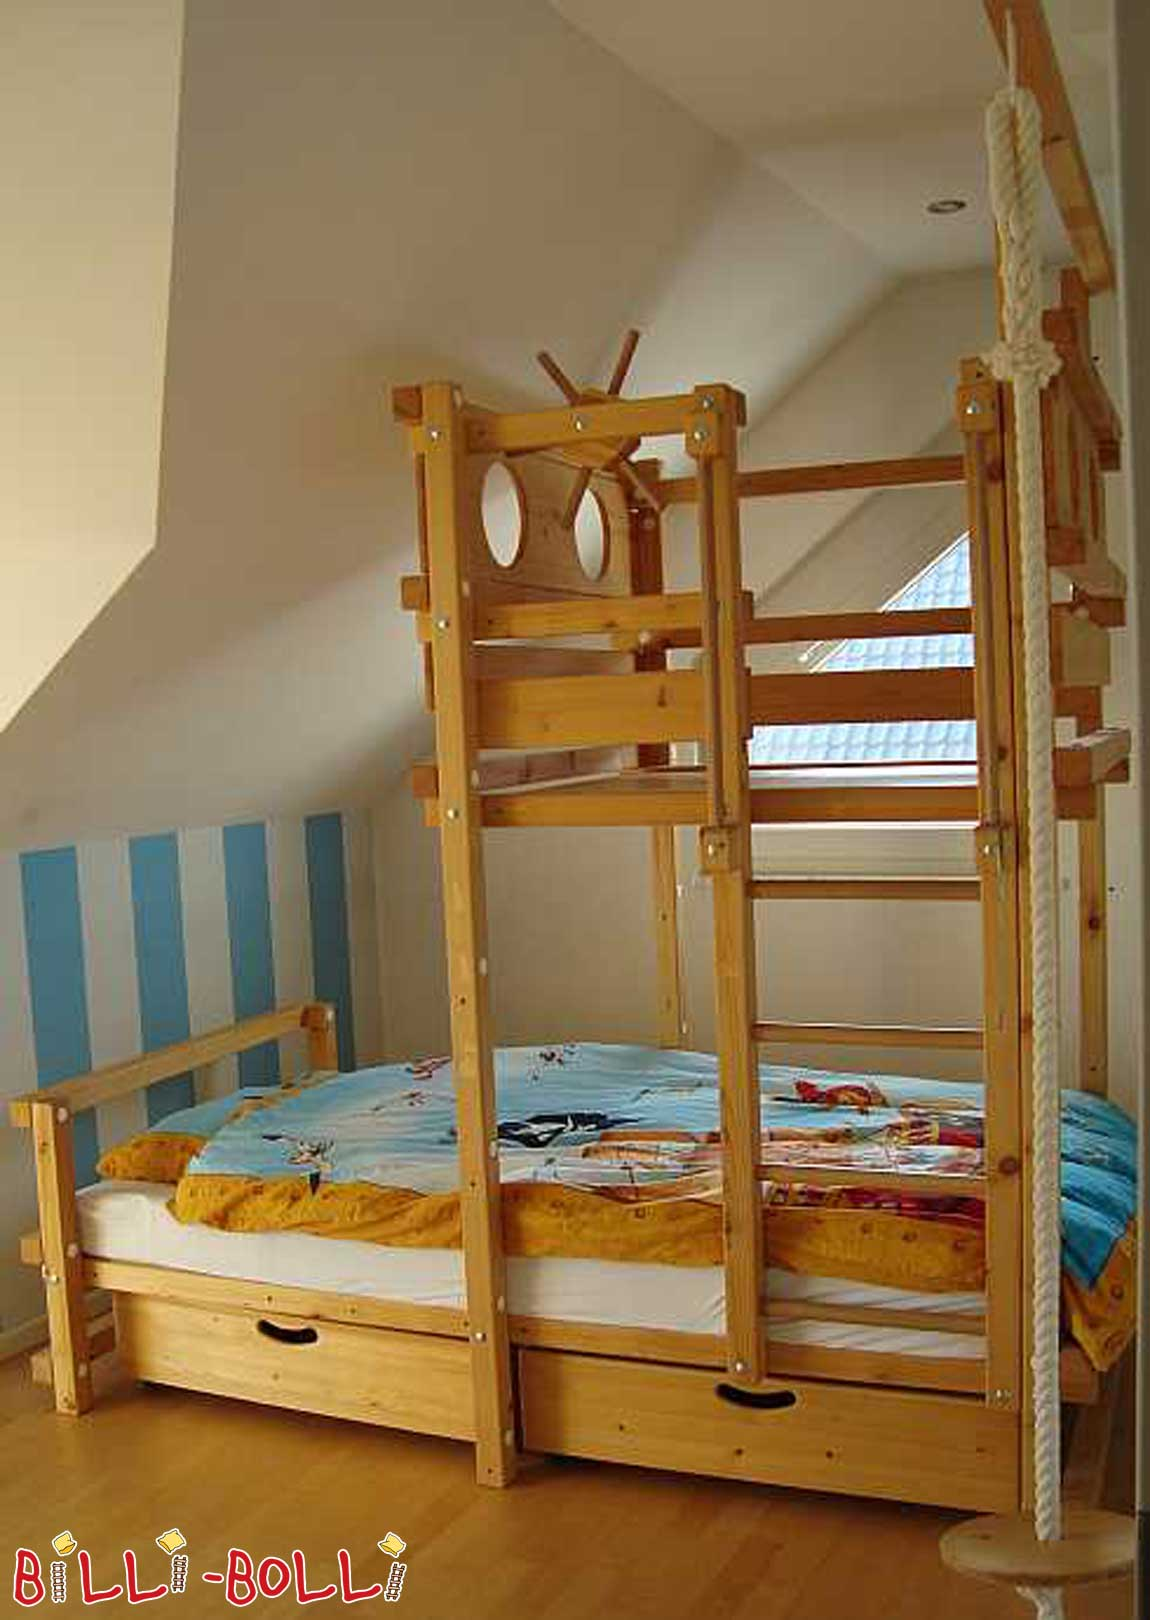 secondhand seite 107 billi bolli kinderm bel. Black Bedroom Furniture Sets. Home Design Ideas